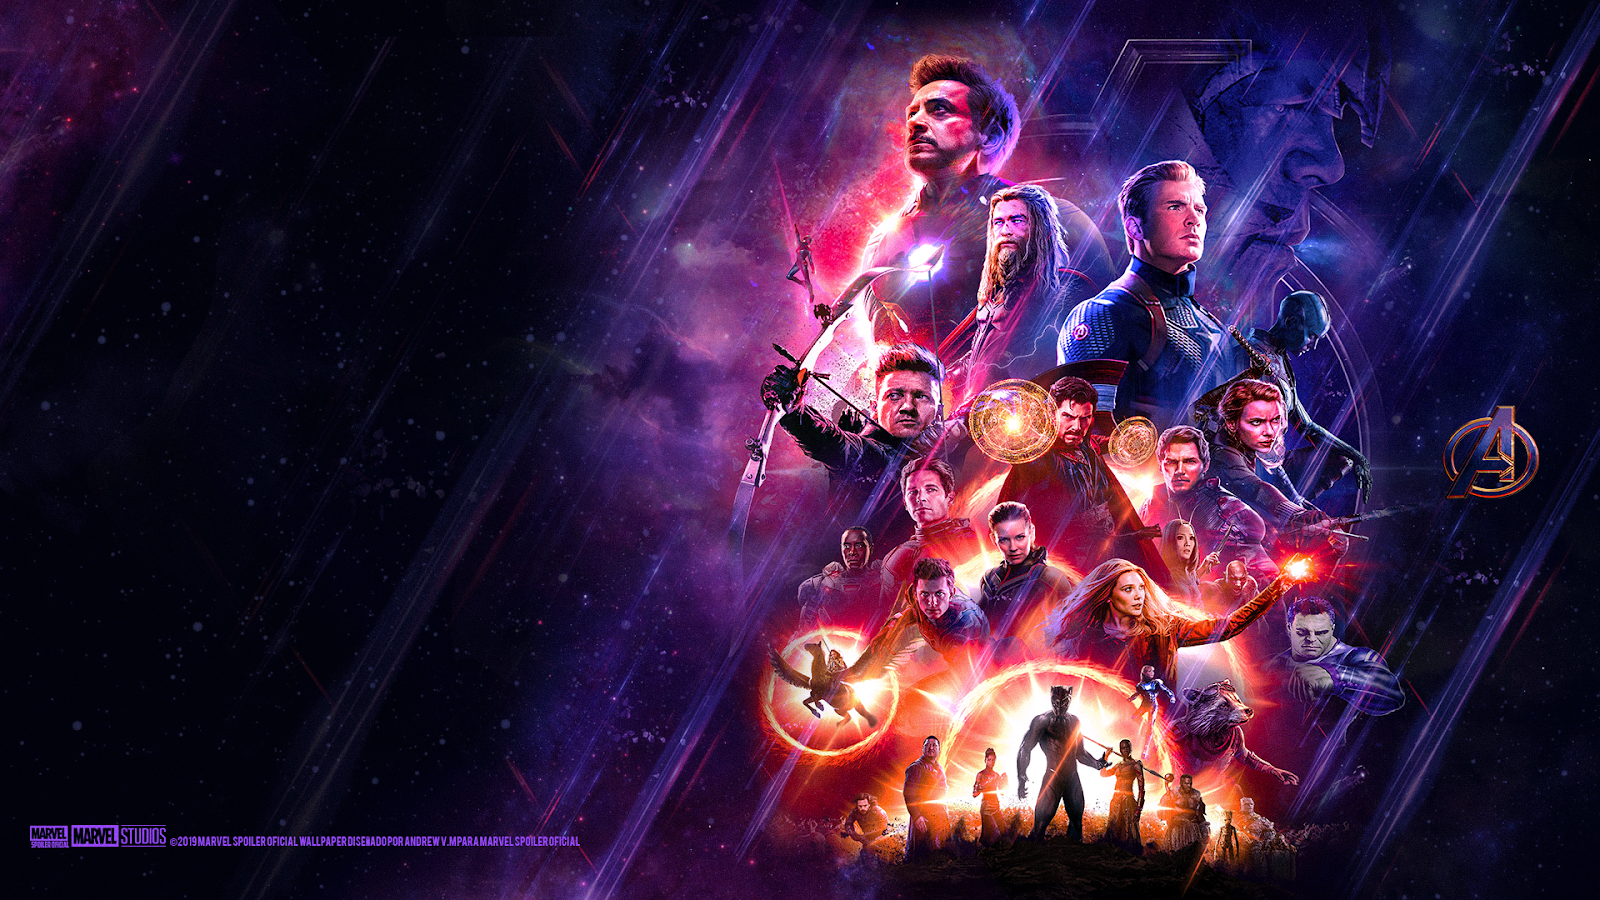 Marvel Spoiler Oficial Avengers Endgame Wallpaper Hd